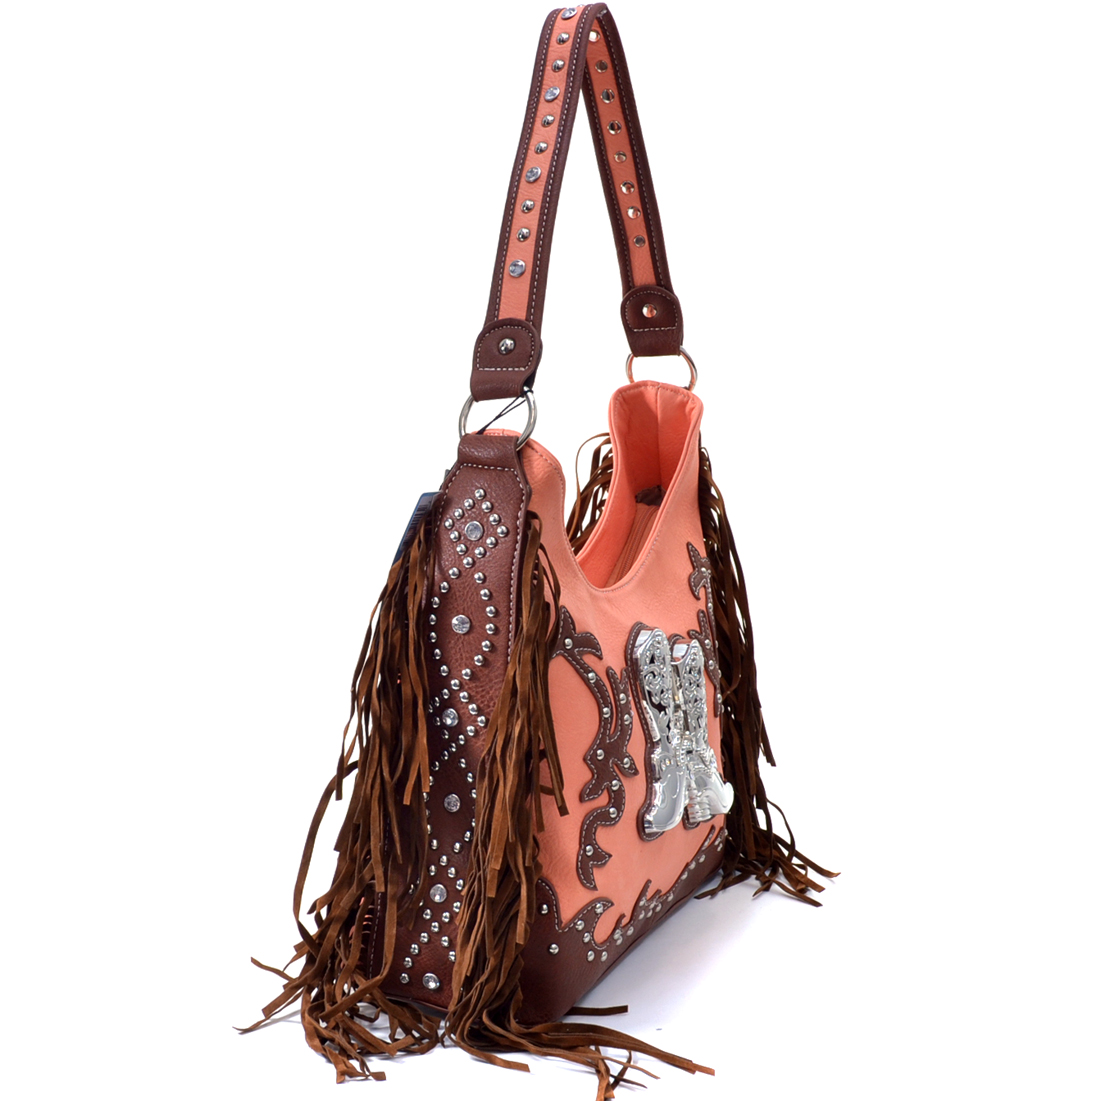 Western Cowgirl Fringed Boots and Rhinestones Studded Shoulder Tote Bag